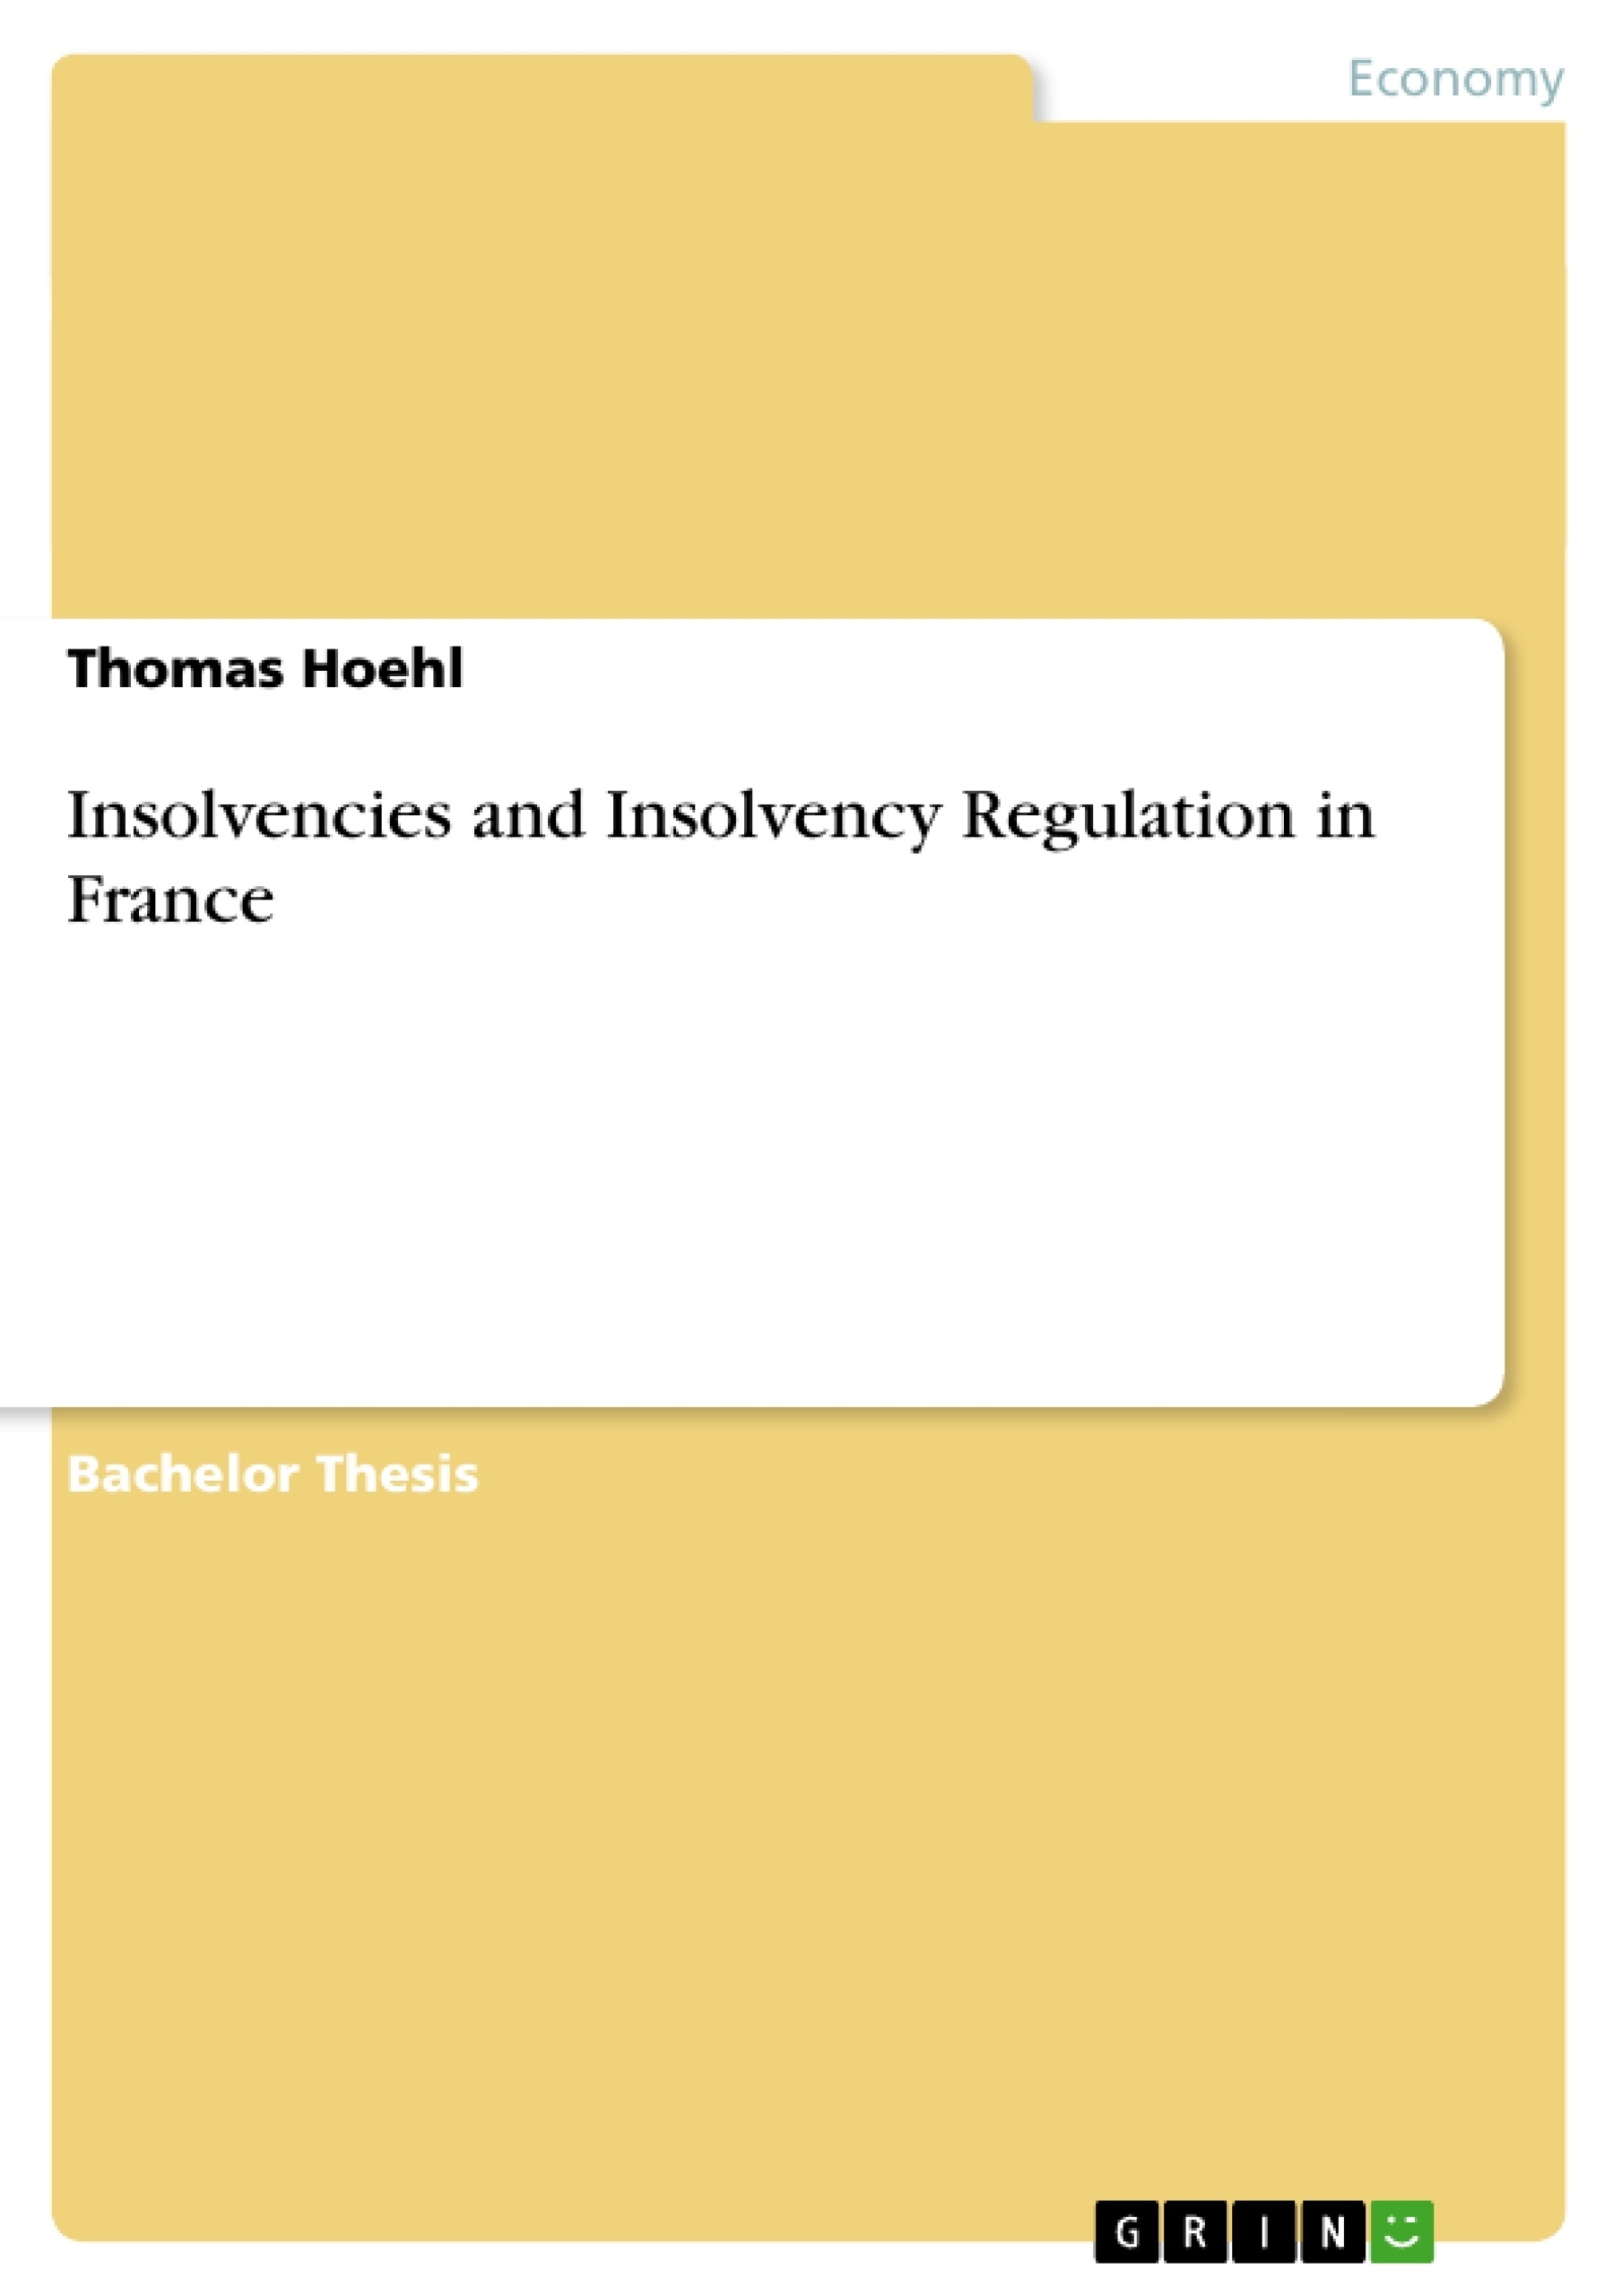 Title: Insolvencies and Insolvency Regulation in France